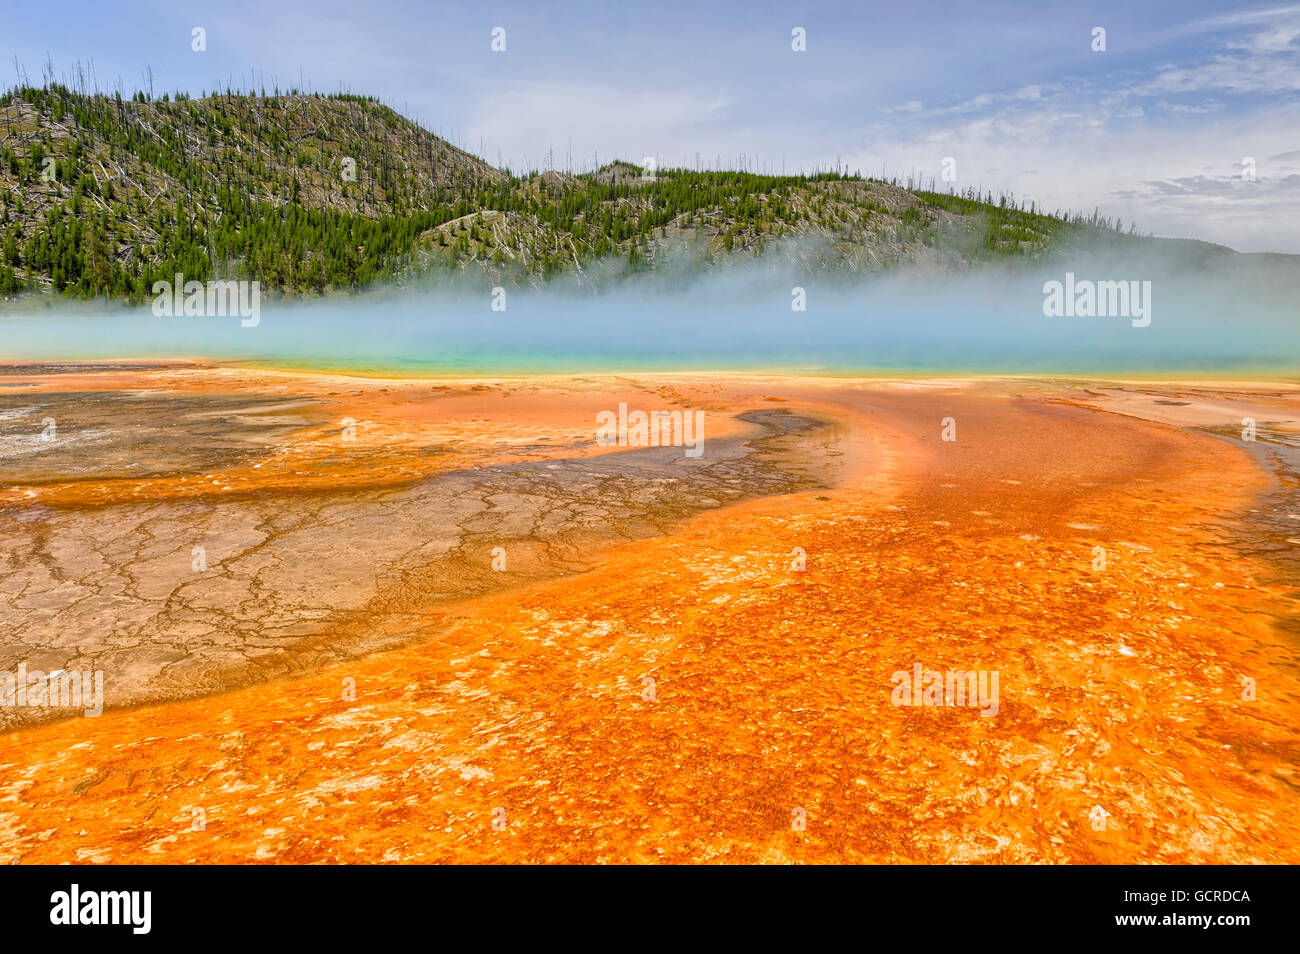 Colorful patterns in the algea and bacteria layers of the Grand Prismatic Spring, Yellowstone National Park - Stock Image